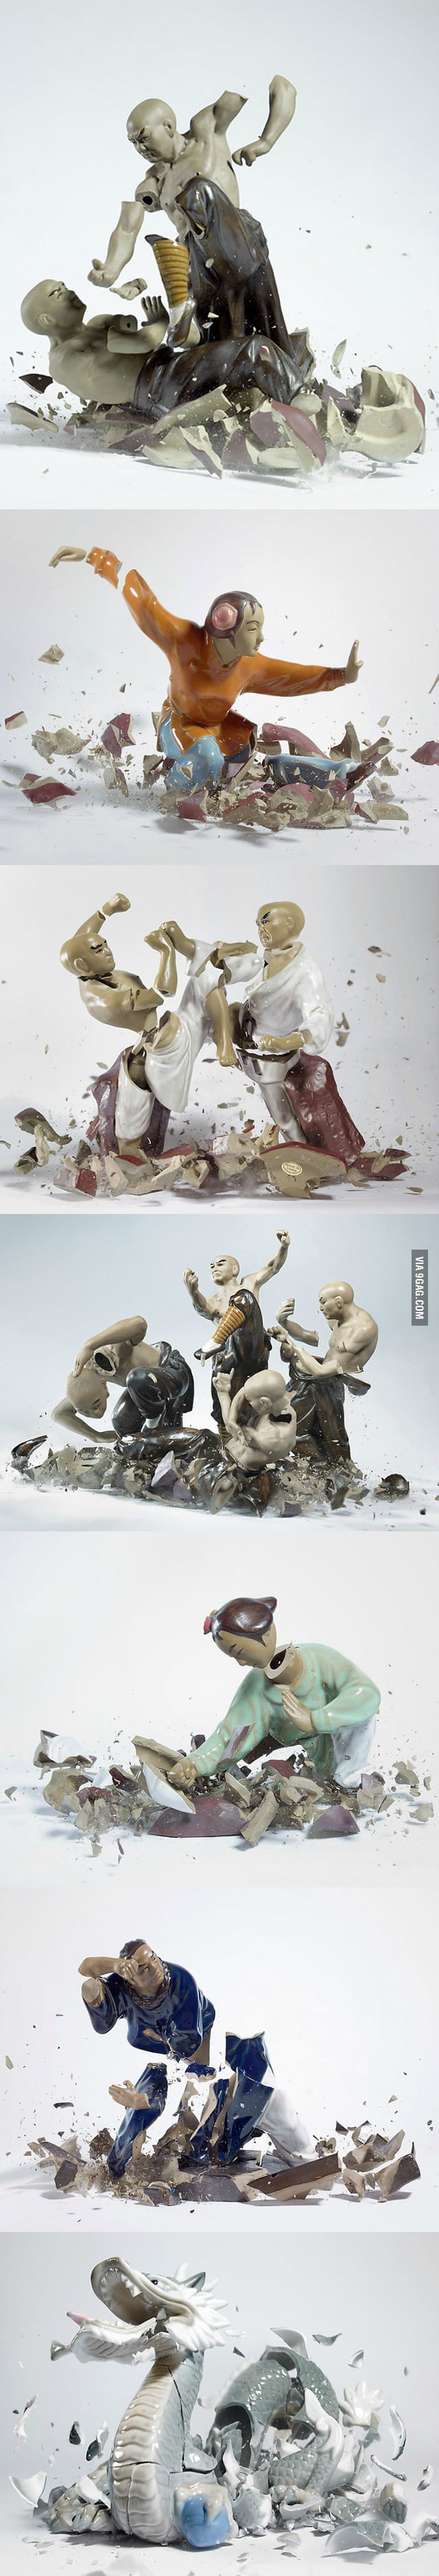 Shattering Porcelain Fighting Figures